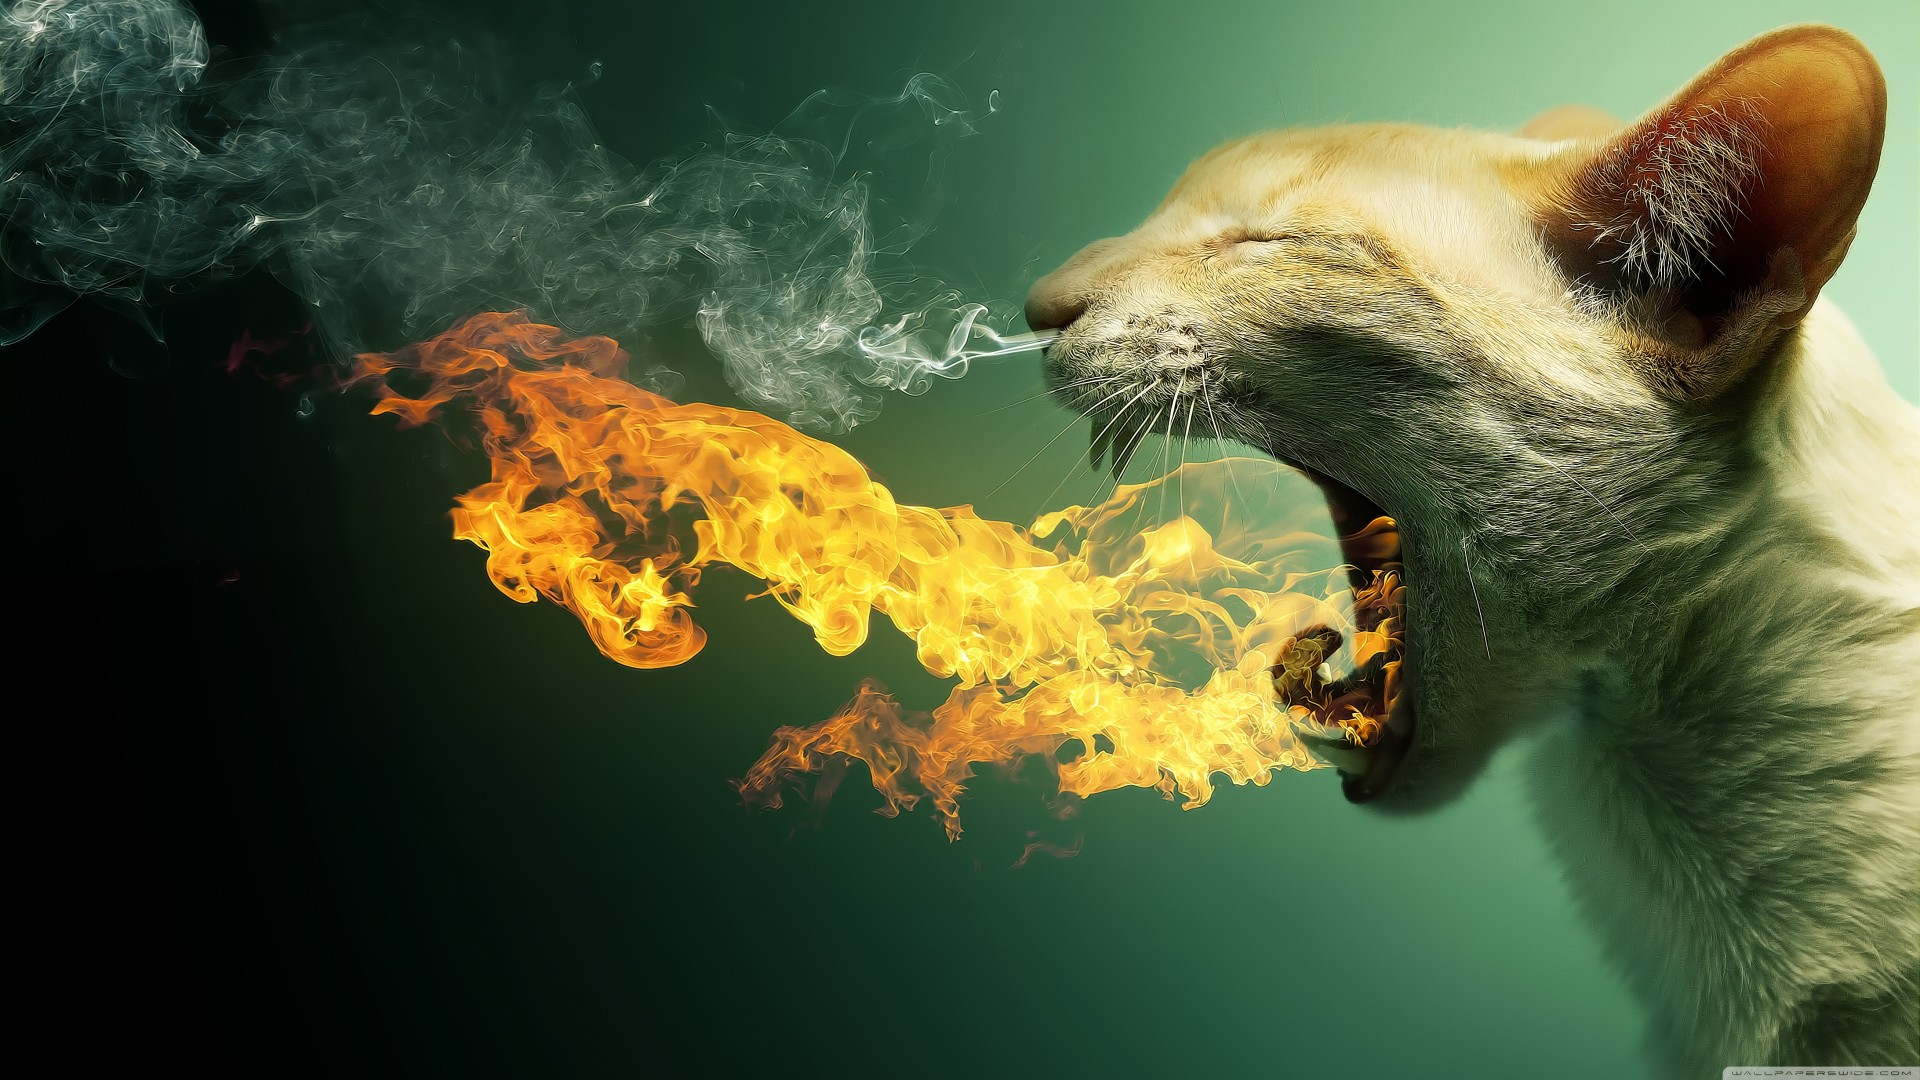 Flaming Cat Funny Creative Animal Wallpaper HD Wallpapers 1920x1080